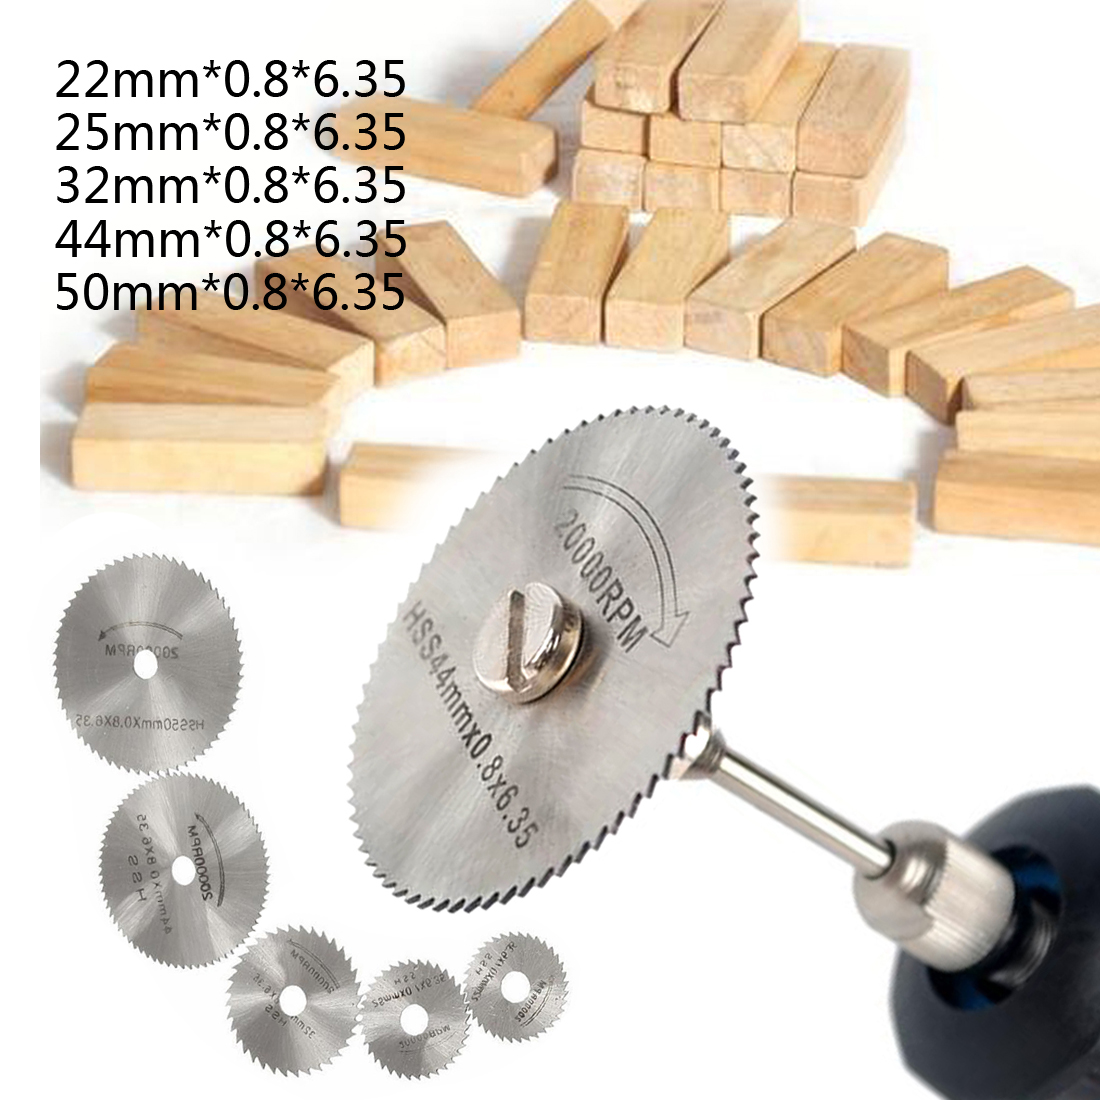 HSS Mini Saw Oscillating Tool Circular Saw Blades Cutting Discs Mandrel Cut Off Cutter Power Tools Dremel Accessories